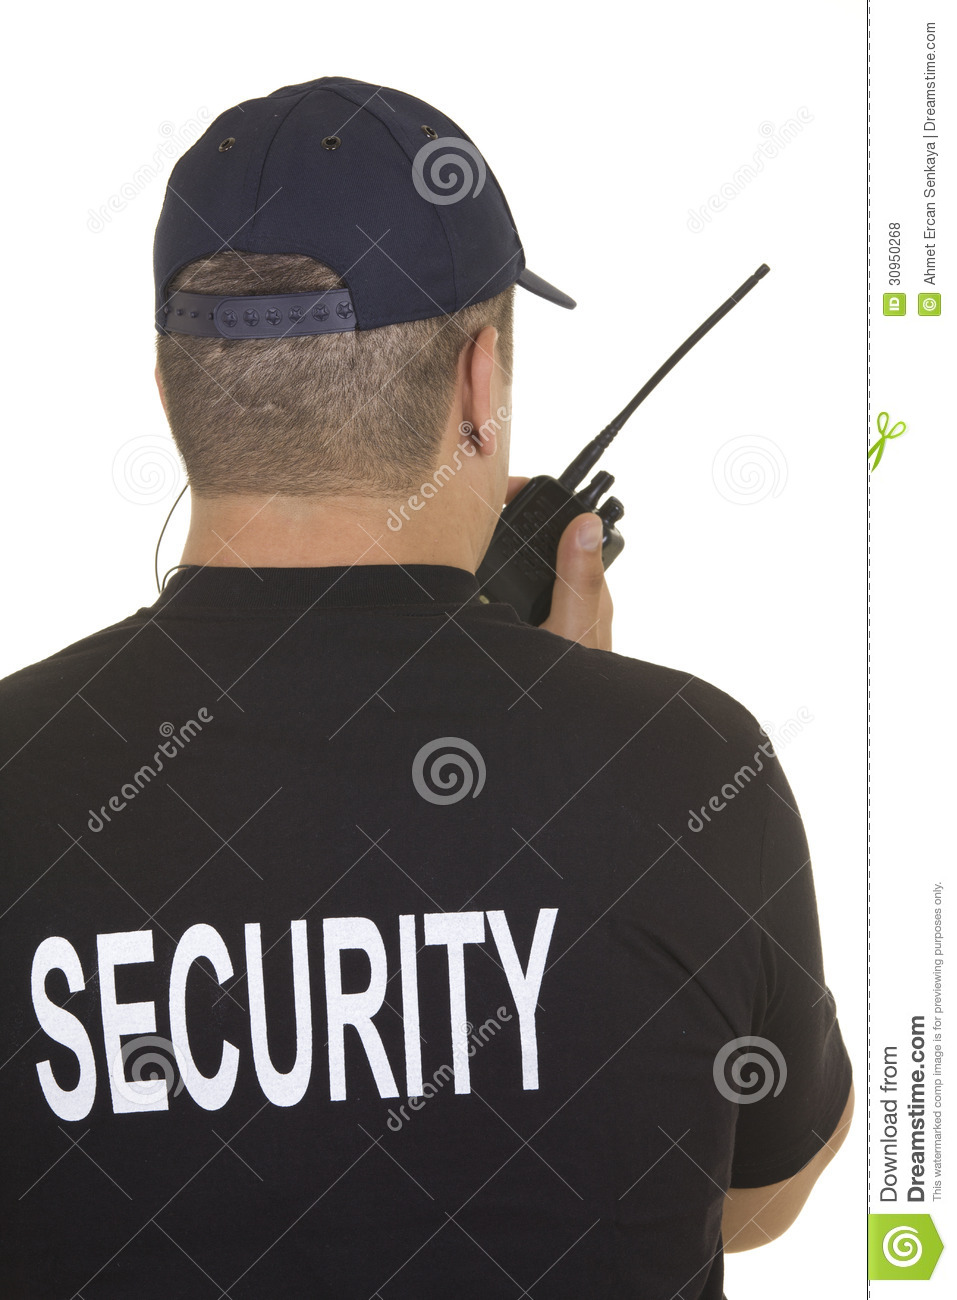 What Holdings Security